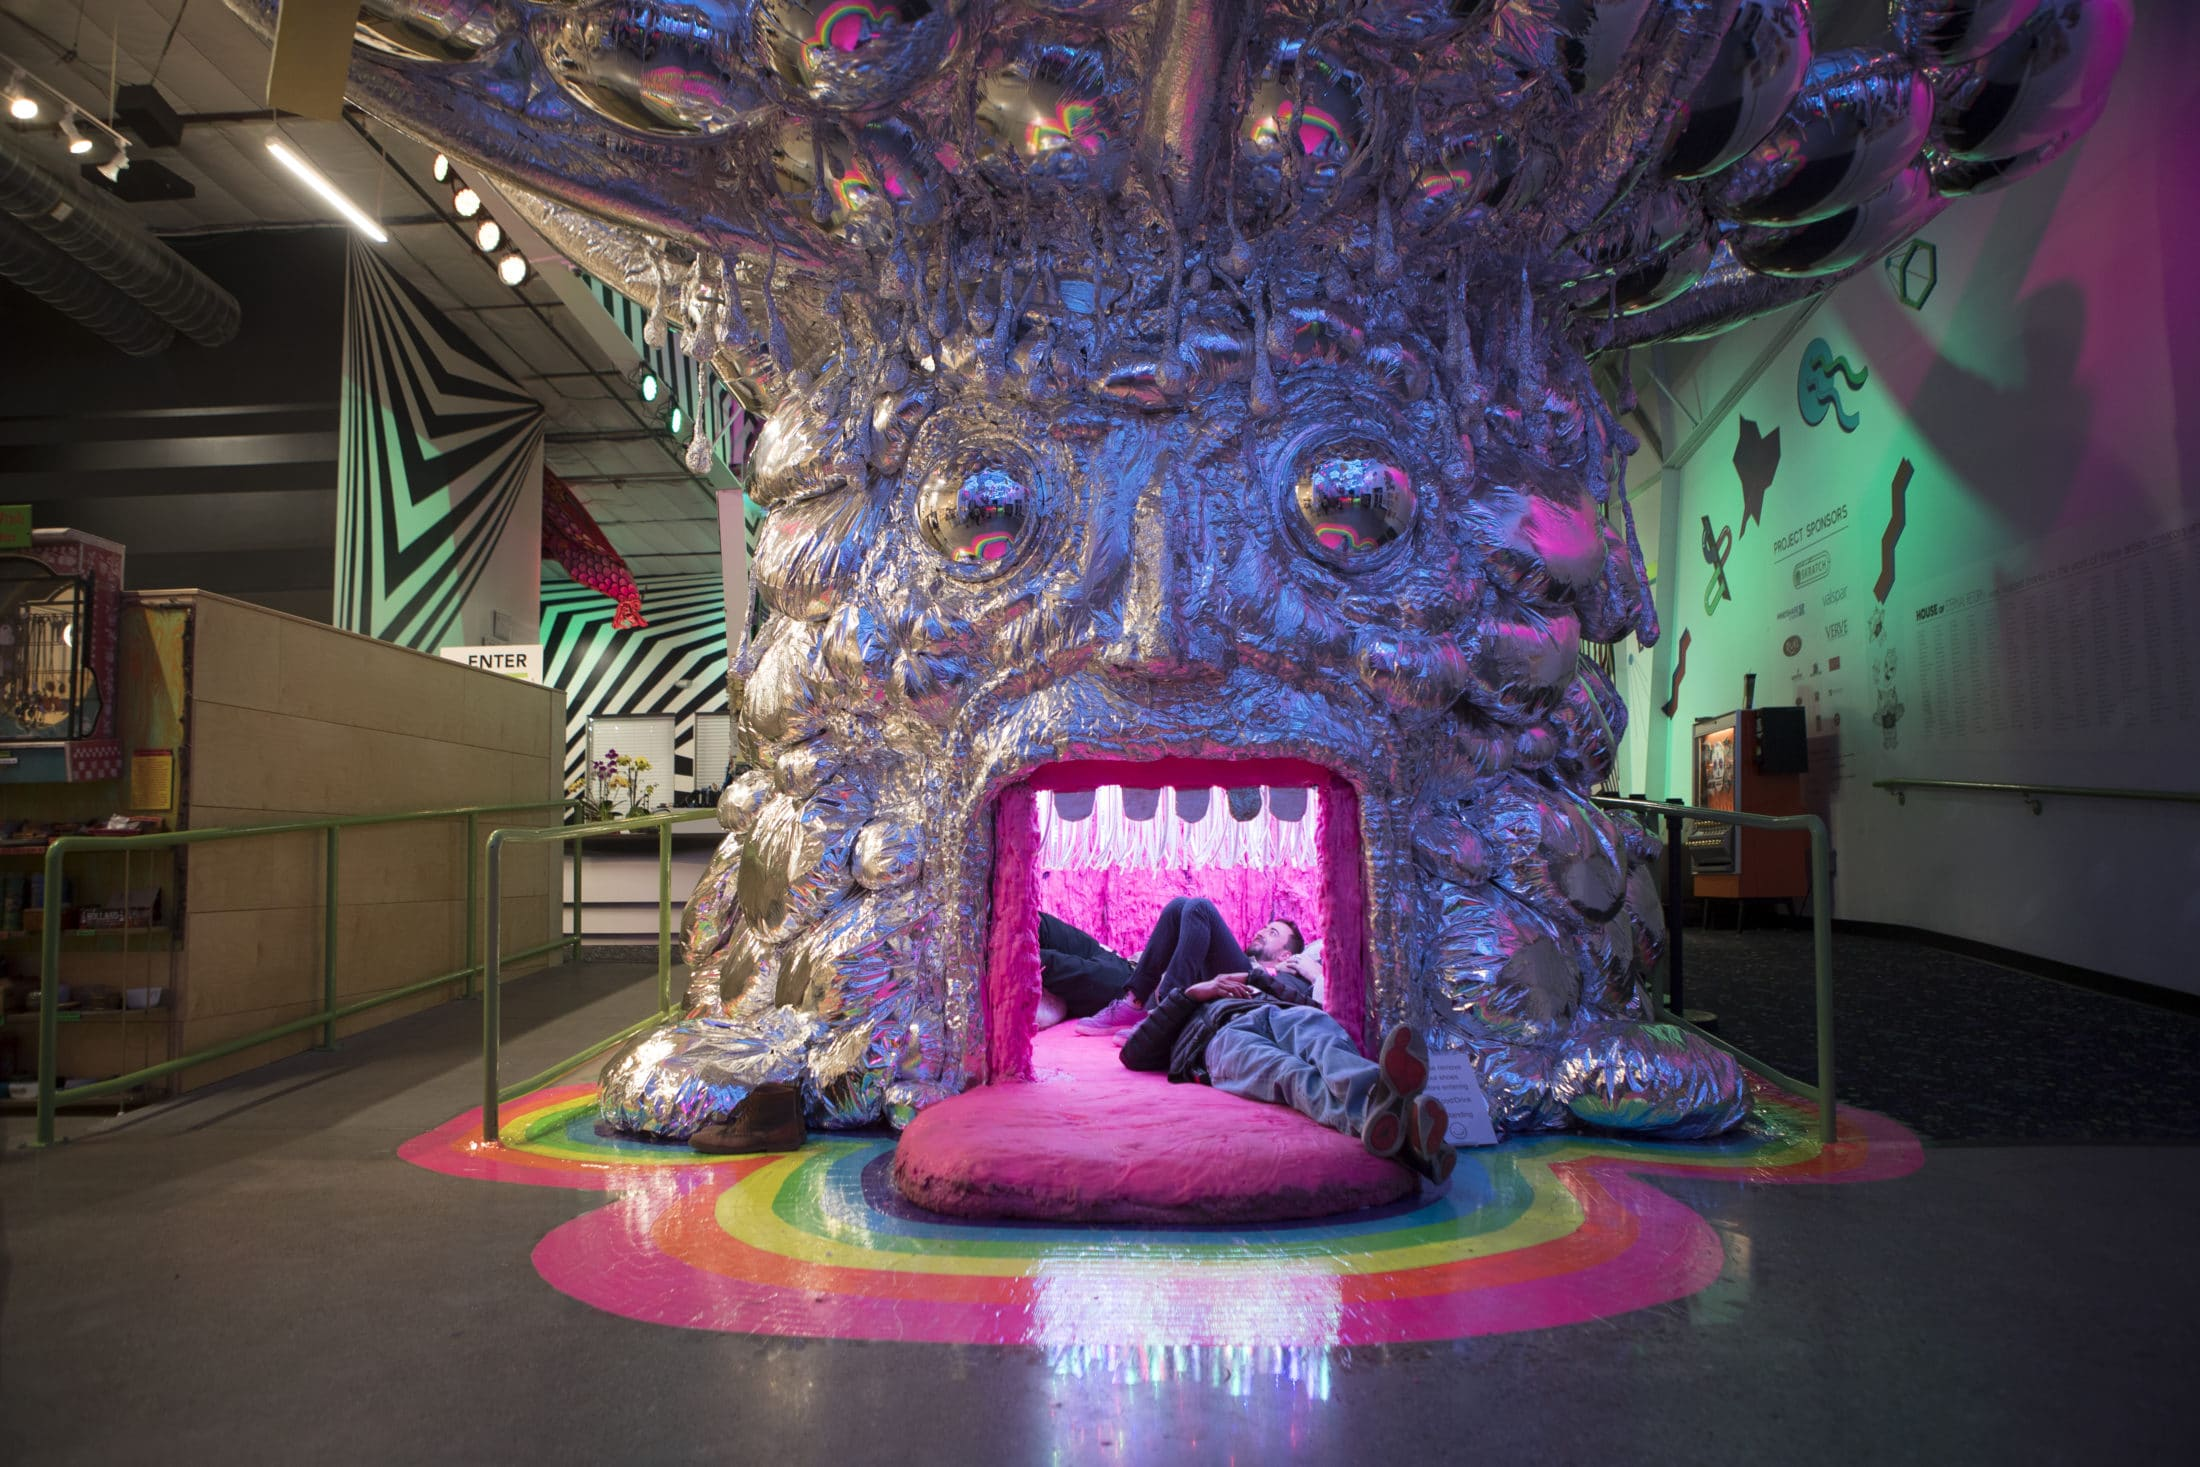 Wayne Coyne's King's Mouth